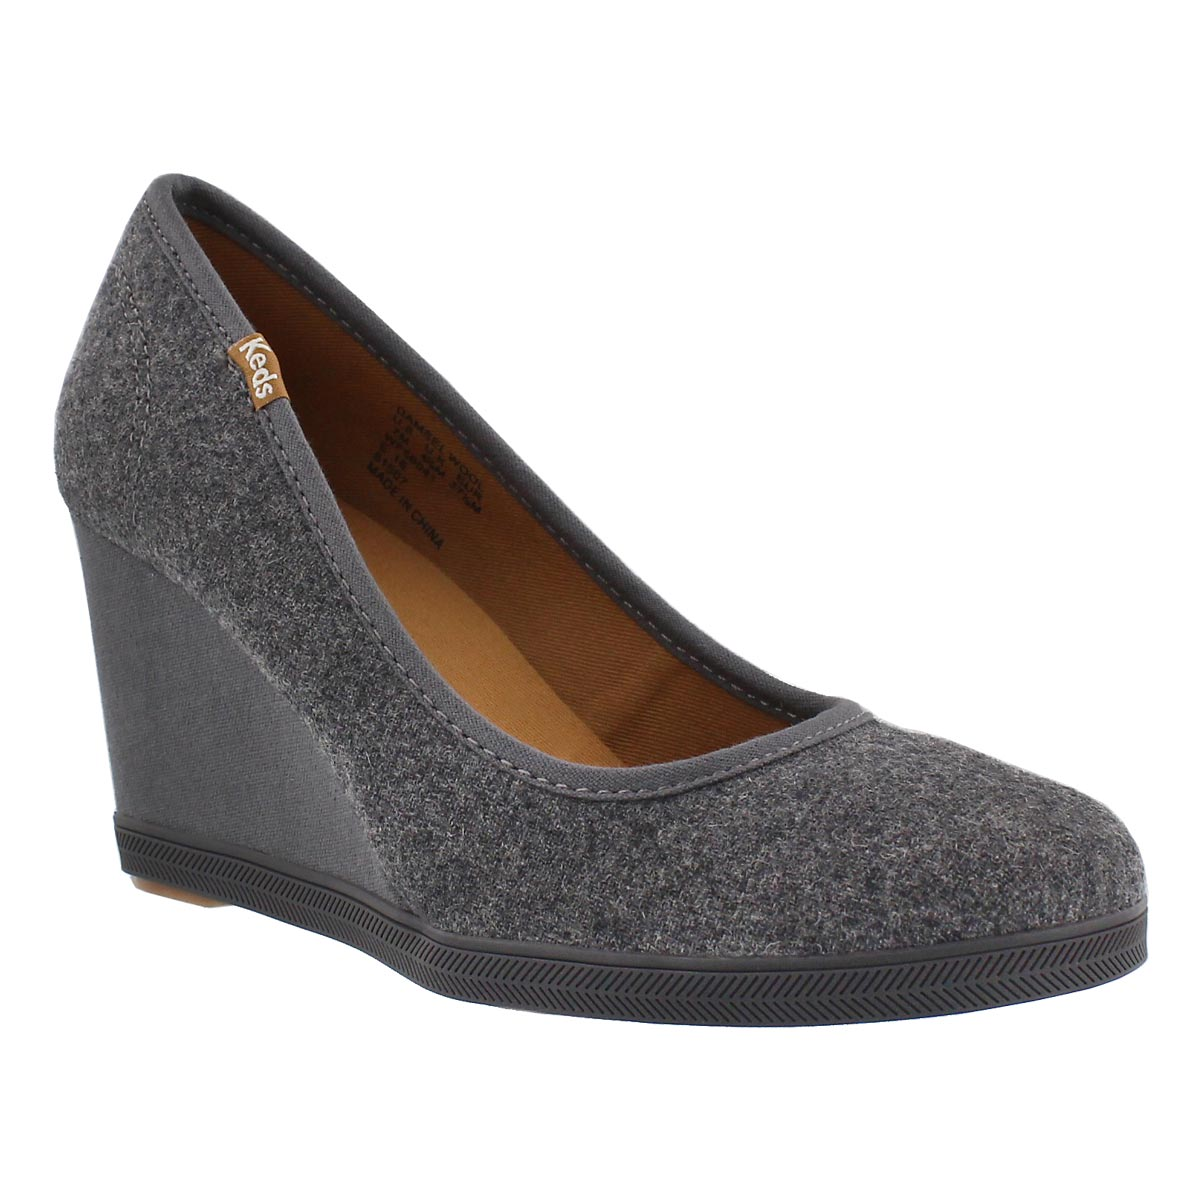 Escarpin Damsel Wool, anthracite, fem